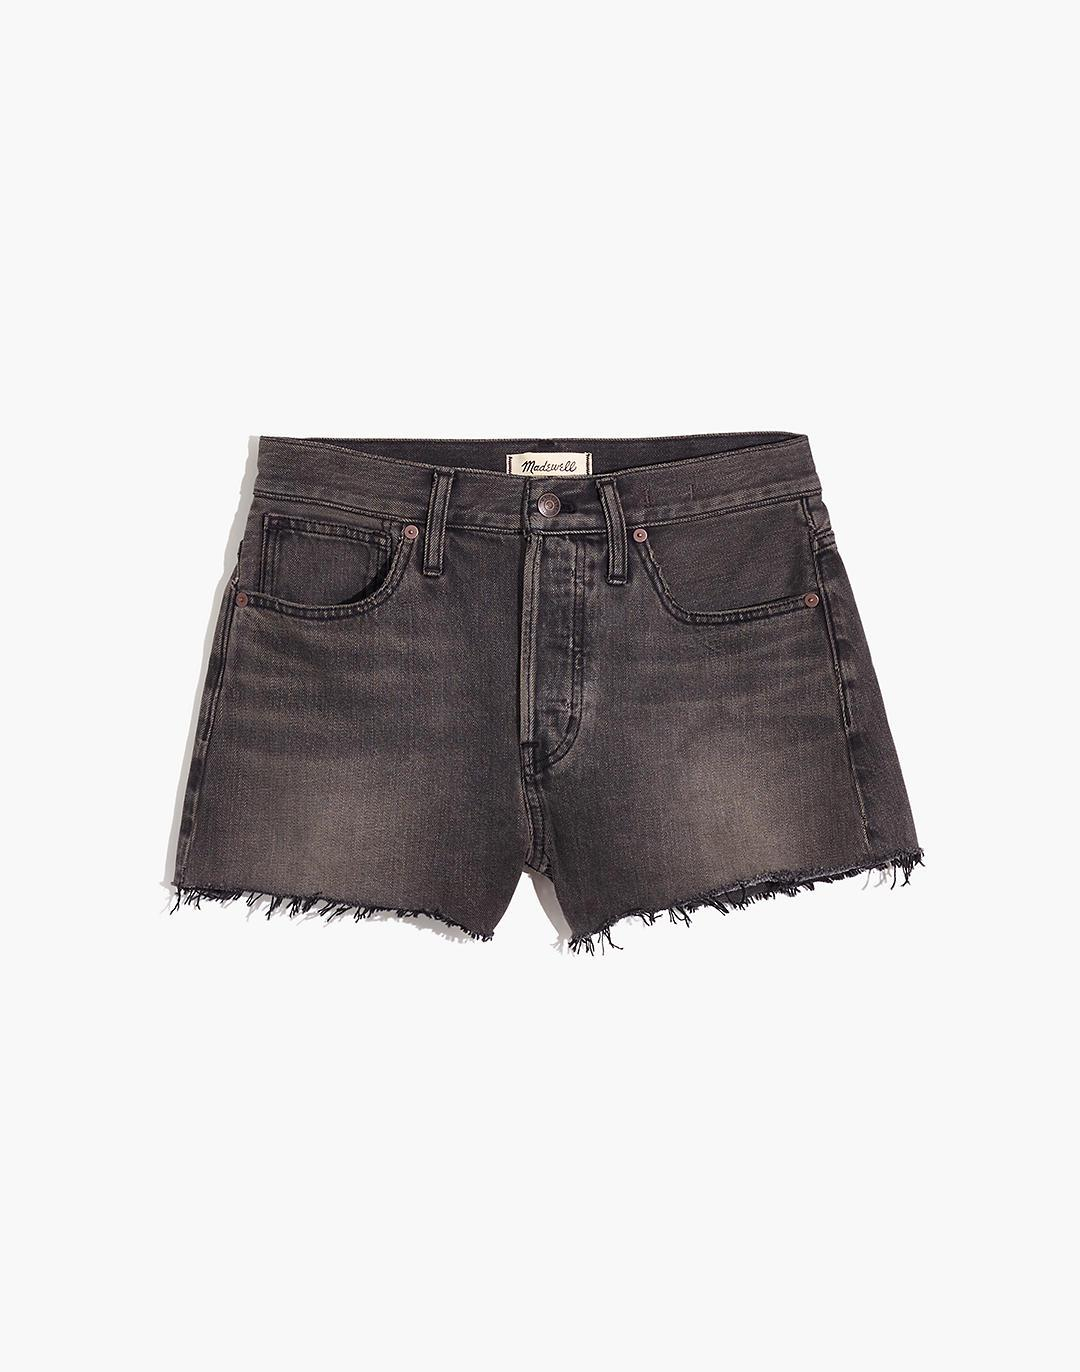 Relaxed Denim Shorts in Bienville Wash 4